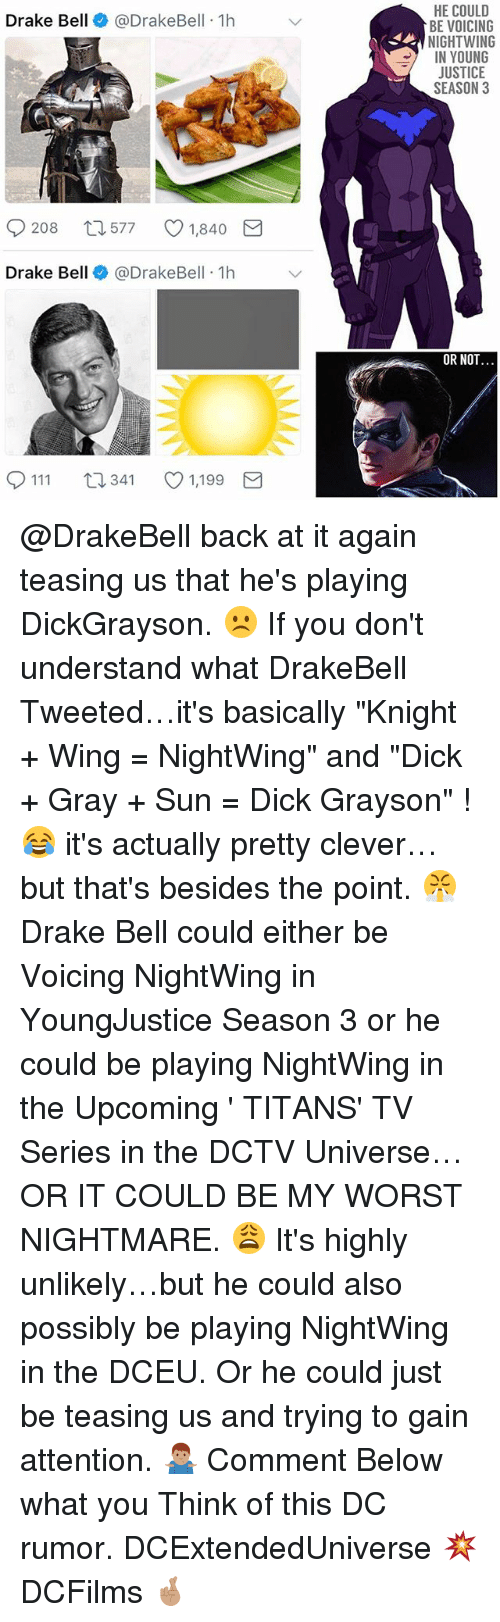 "Drake Bell: HE COULD  BE VOICING  NIGHTWING  IN YOUNG  JUSTICE  SEASON 3  Drake Bell@DrakeBell 1h  208  577  1,840  Drake Bell @DrakeBell 1h  OR NOT  0111 t  341 1,199 @DrakeBell back at it again teasing us that he's playing DickGrayson. ☹️ If you don't understand what DrakeBell Tweeted…it's basically ""Knight + Wing = NightWing"" and ""Dick + Gray + Sun = Dick Grayson"" ! 😂 it's actually pretty clever…but that's besides the point. 😤 Drake Bell could either be Voicing NightWing in YoungJustice Season 3 or he could be playing NightWing in the Upcoming ' TITANS' TV Series in the DCTV Universe…OR IT COULD BE MY WORST NIGHTMARE. 😩 It's highly unlikely…but he could also possibly be playing NightWing in the DCEU. Or he could just be teasing us and trying to gain attention. 🤷🏽‍♂️ Comment Below what you Think of this DC rumor. DCExtendedUniverse 💥 DCFilms 🤞🏽"